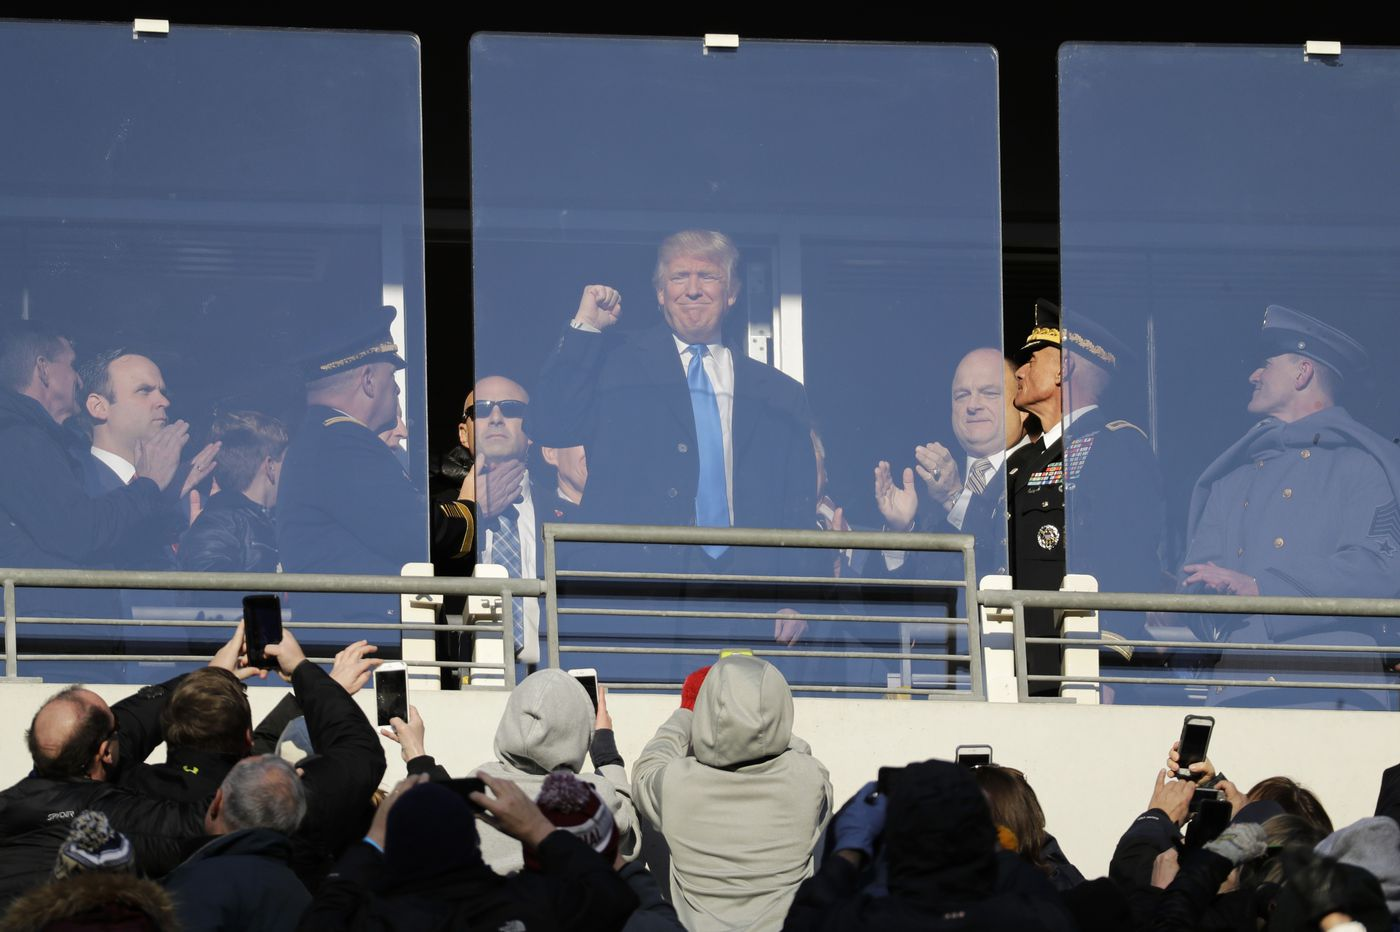 Trump will handle coin toss for Army-Navy football game in Philadelphia